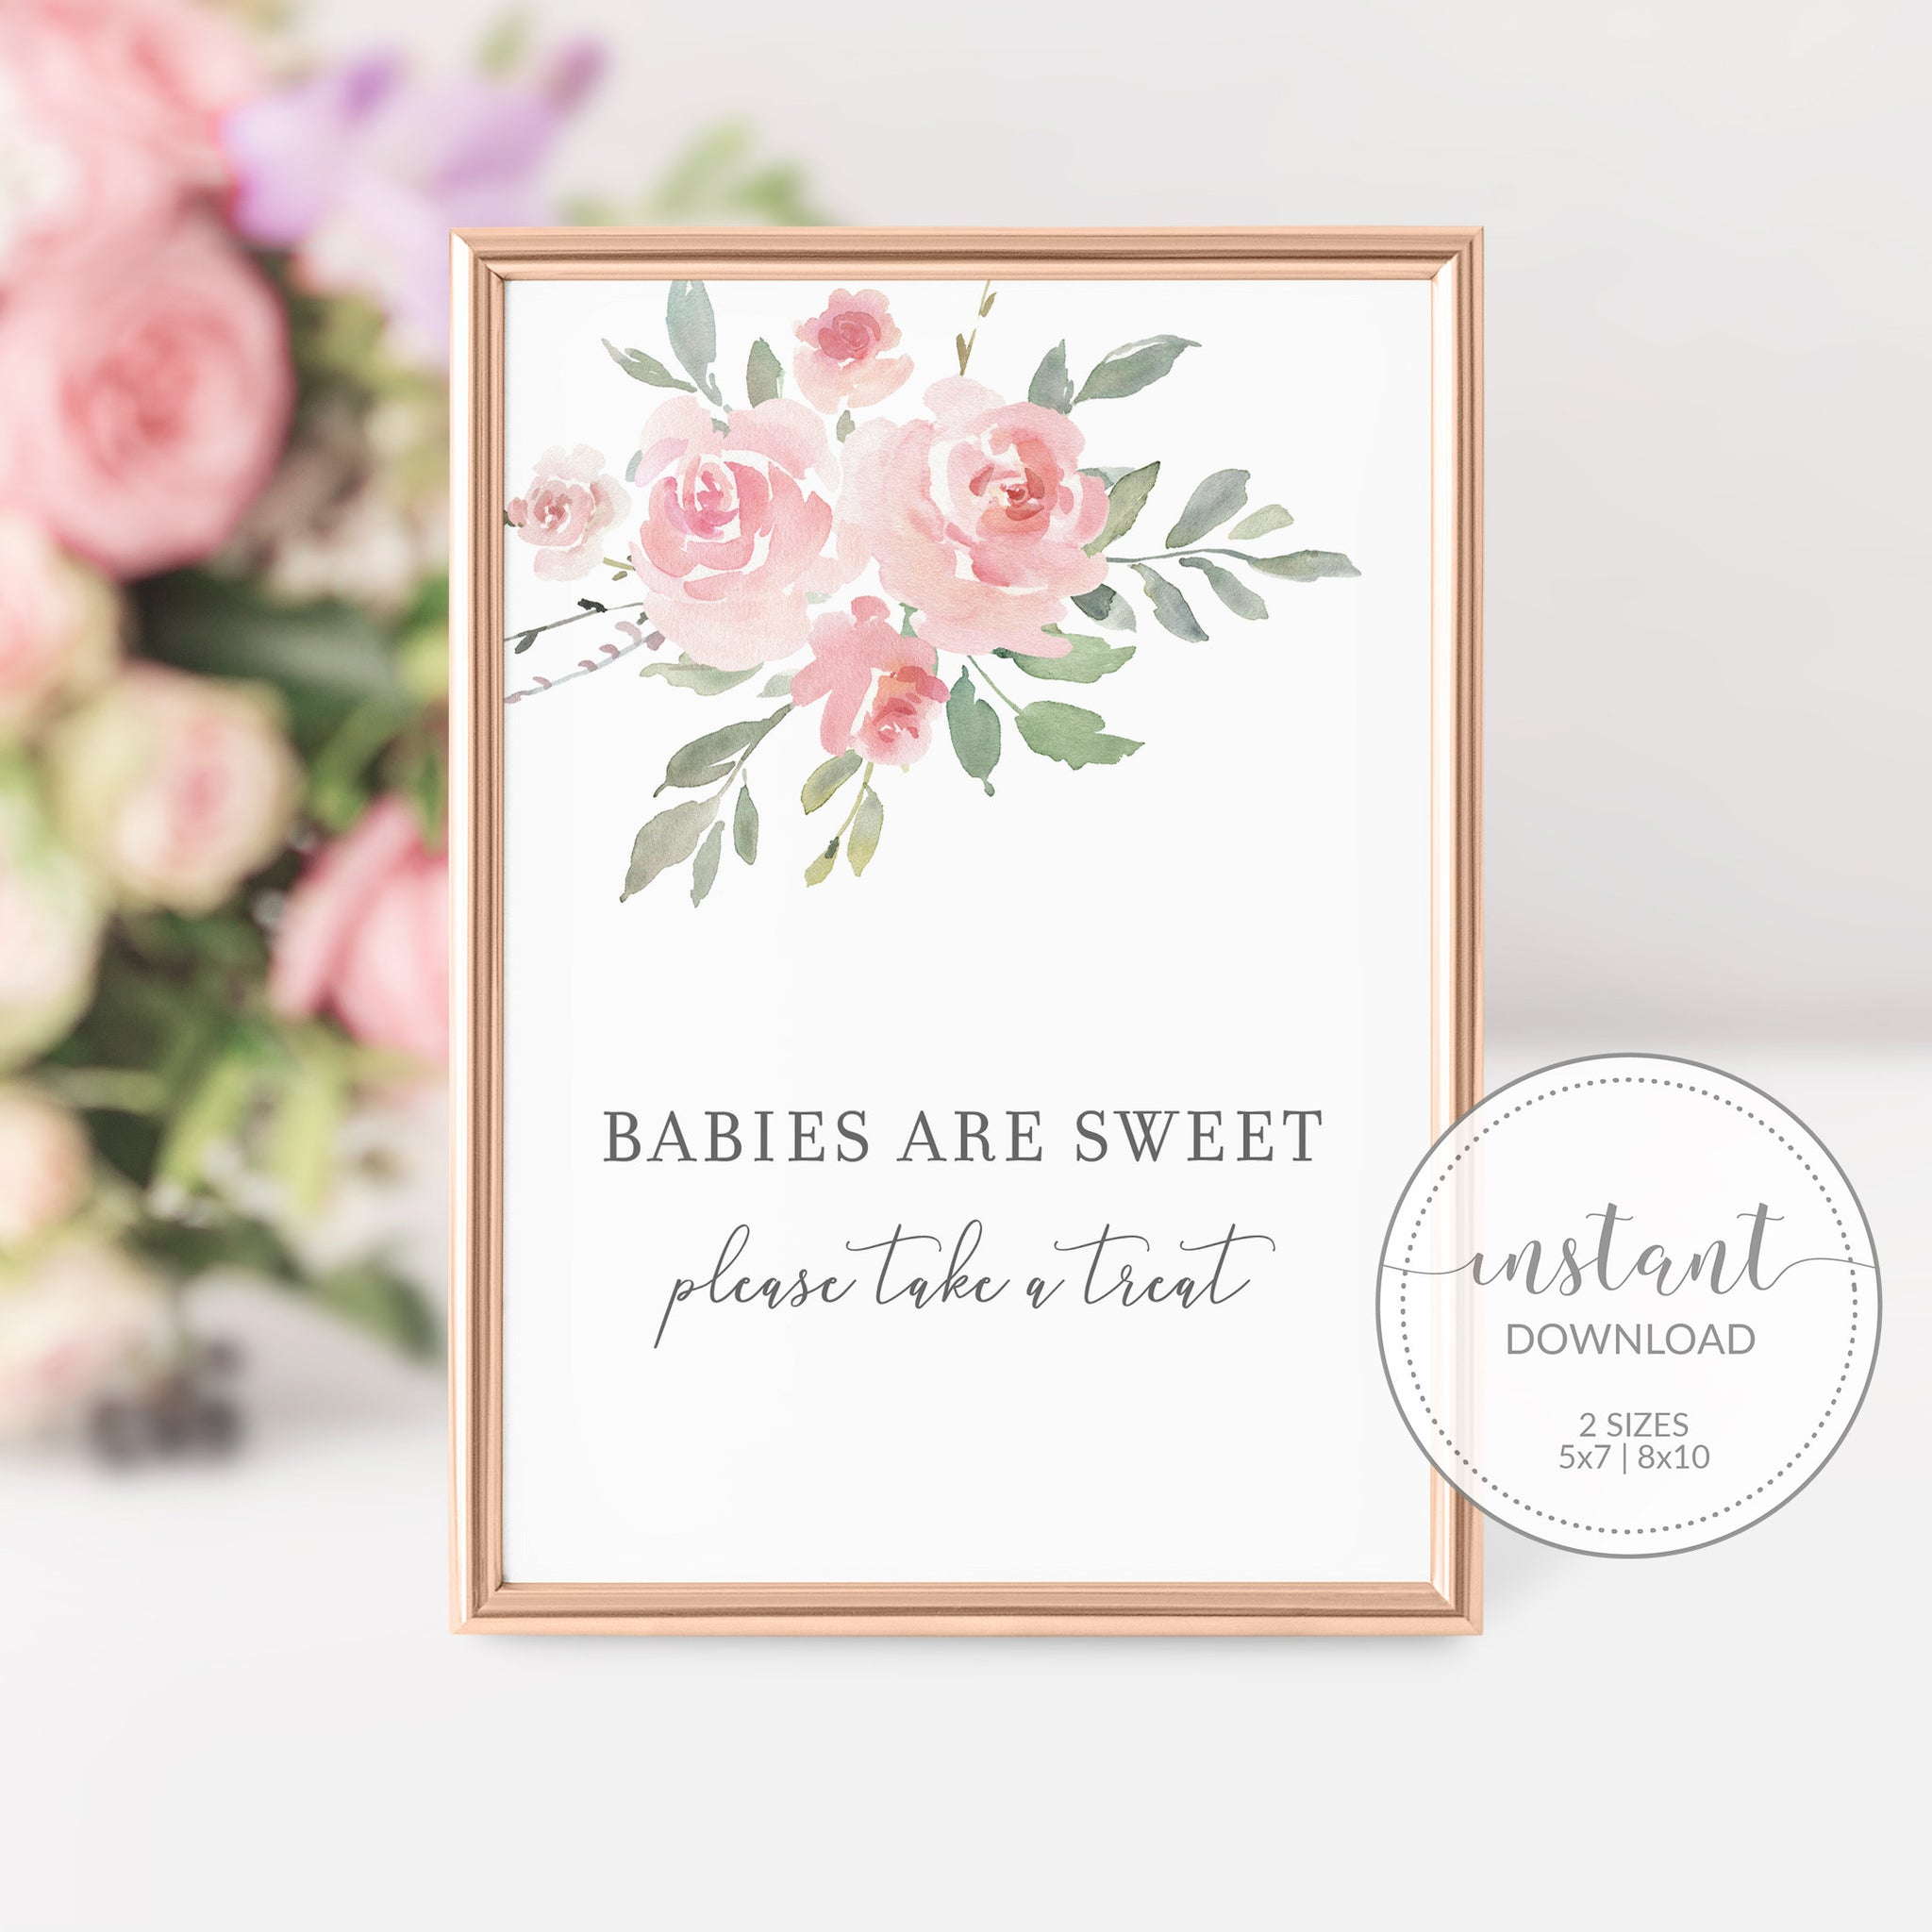 Baby Shower Treat Sign, Baby Shower Dessert Table Sign, Floral Baby Shower Decorations, DIGITAL DOWNLOAD - FR100 - @PlumPolkaDot